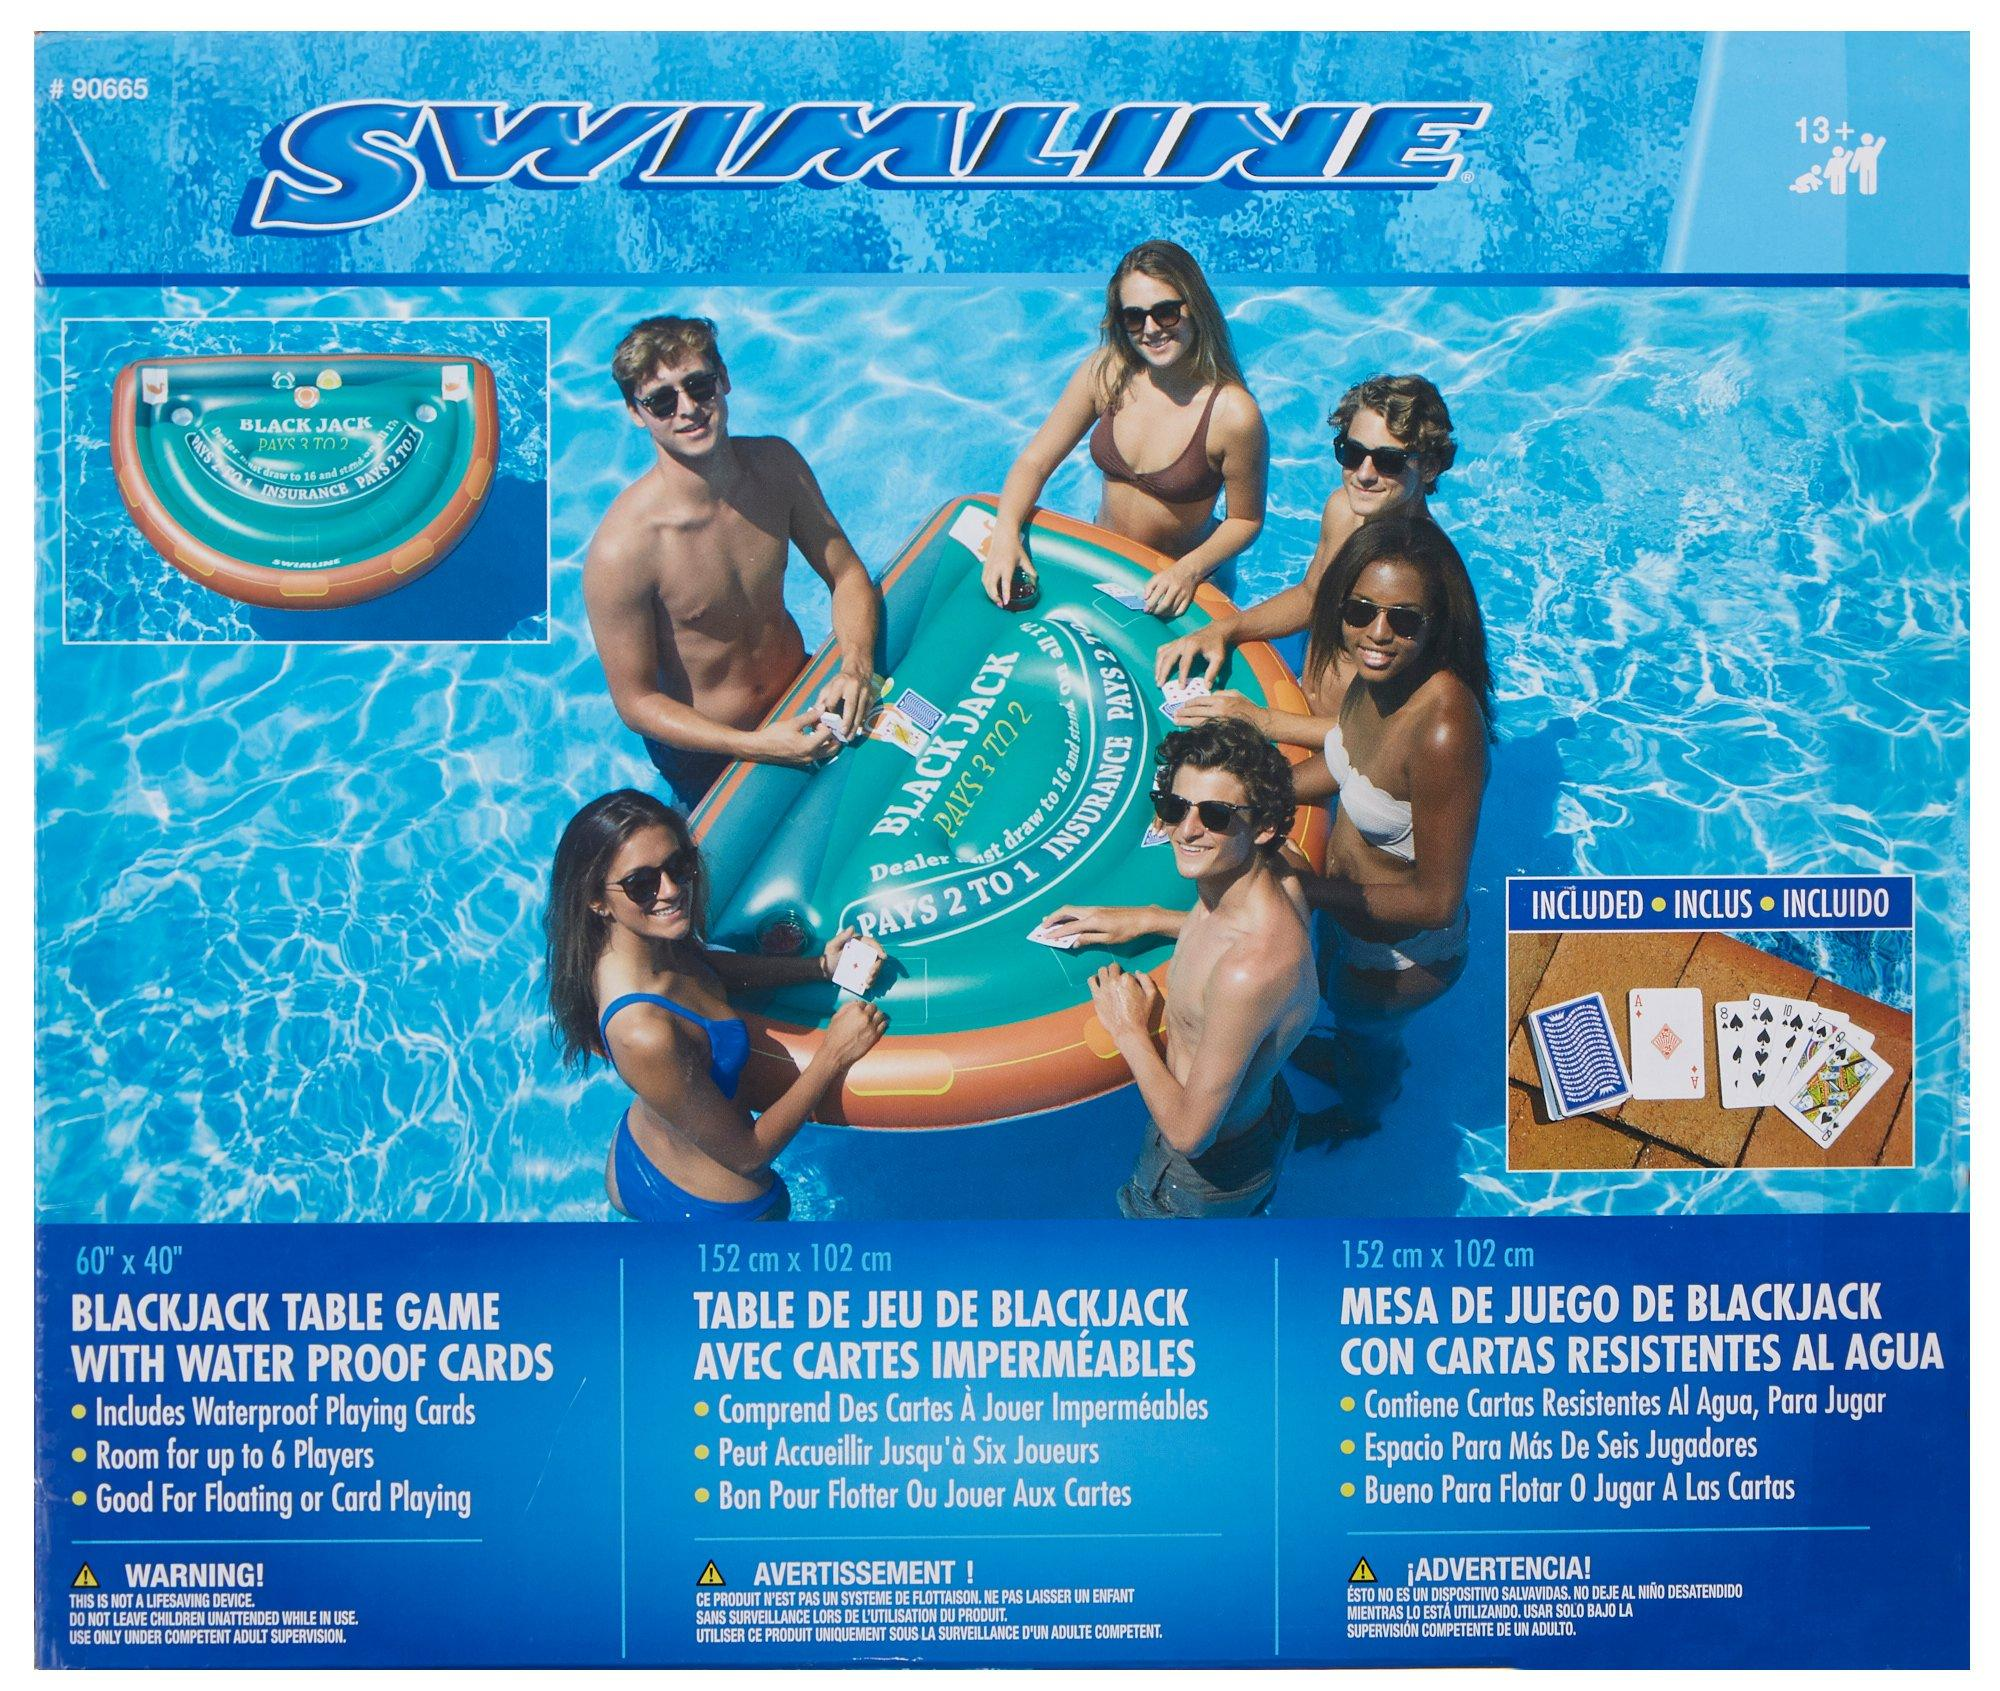 Blackjack Mesa Details About Swimline Blackjack Table Game With Water Proof Cards One Size Green Brown